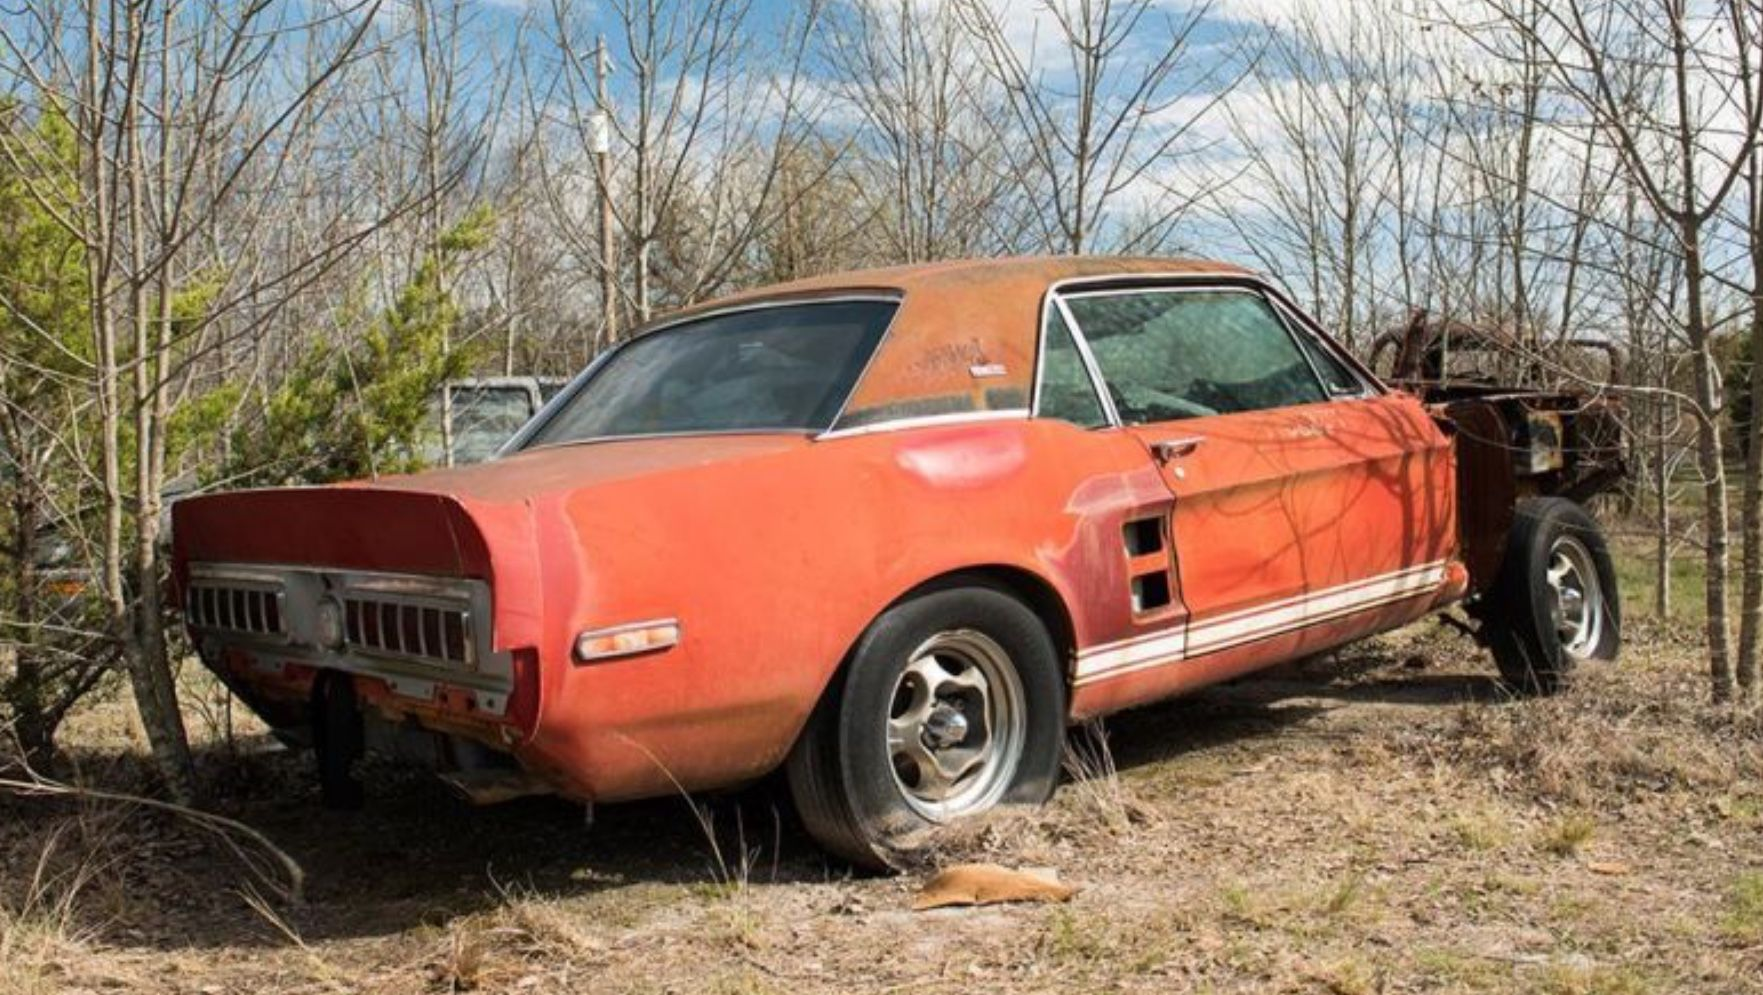 Pin by Tim on Crashed - abandoned old cars | Mustang ...